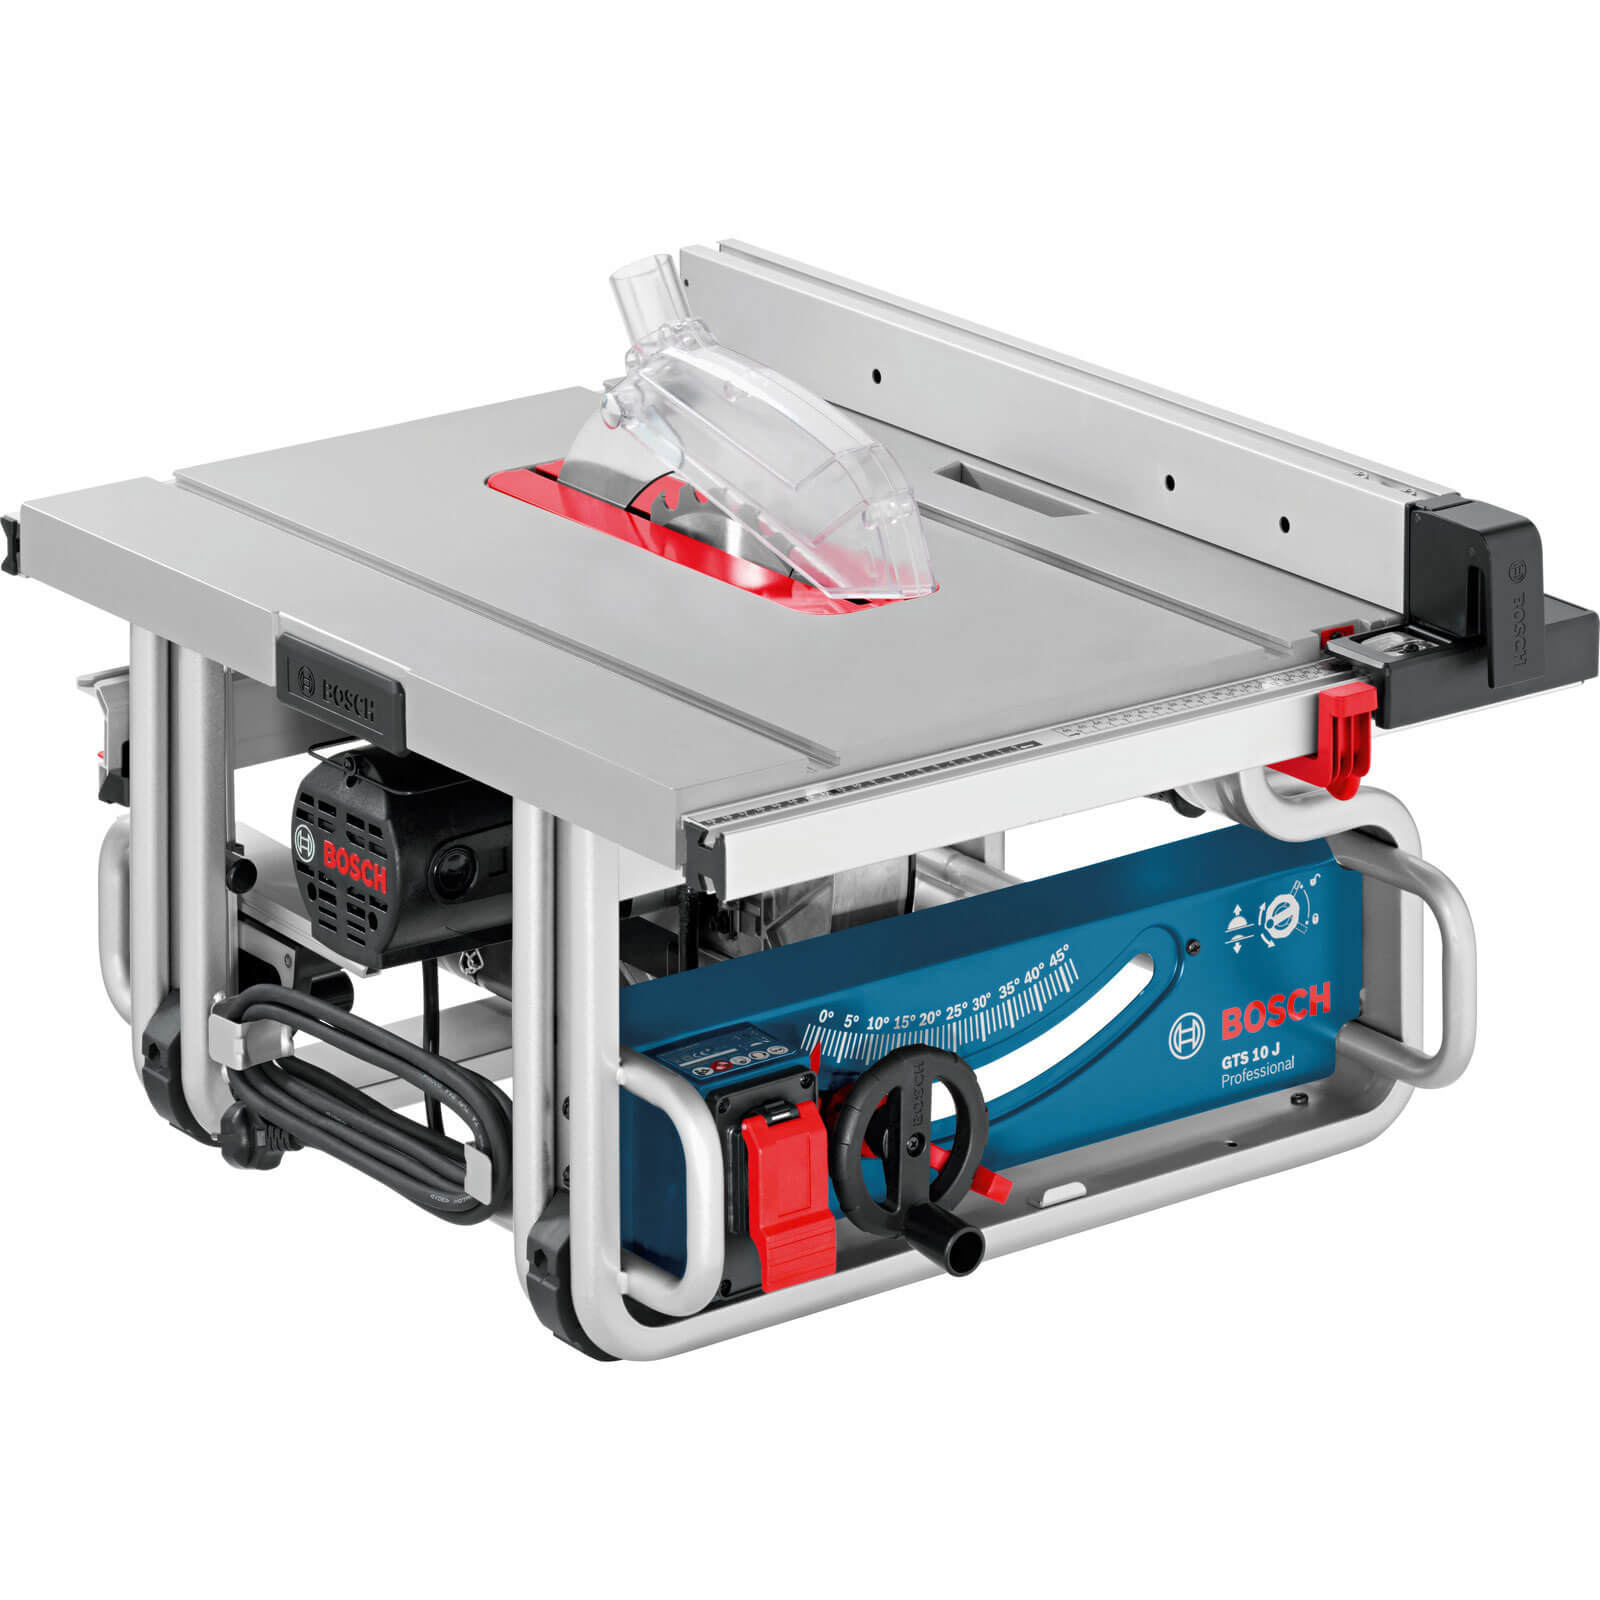 Image of Bosch GTS 10 J Table Saw 110v